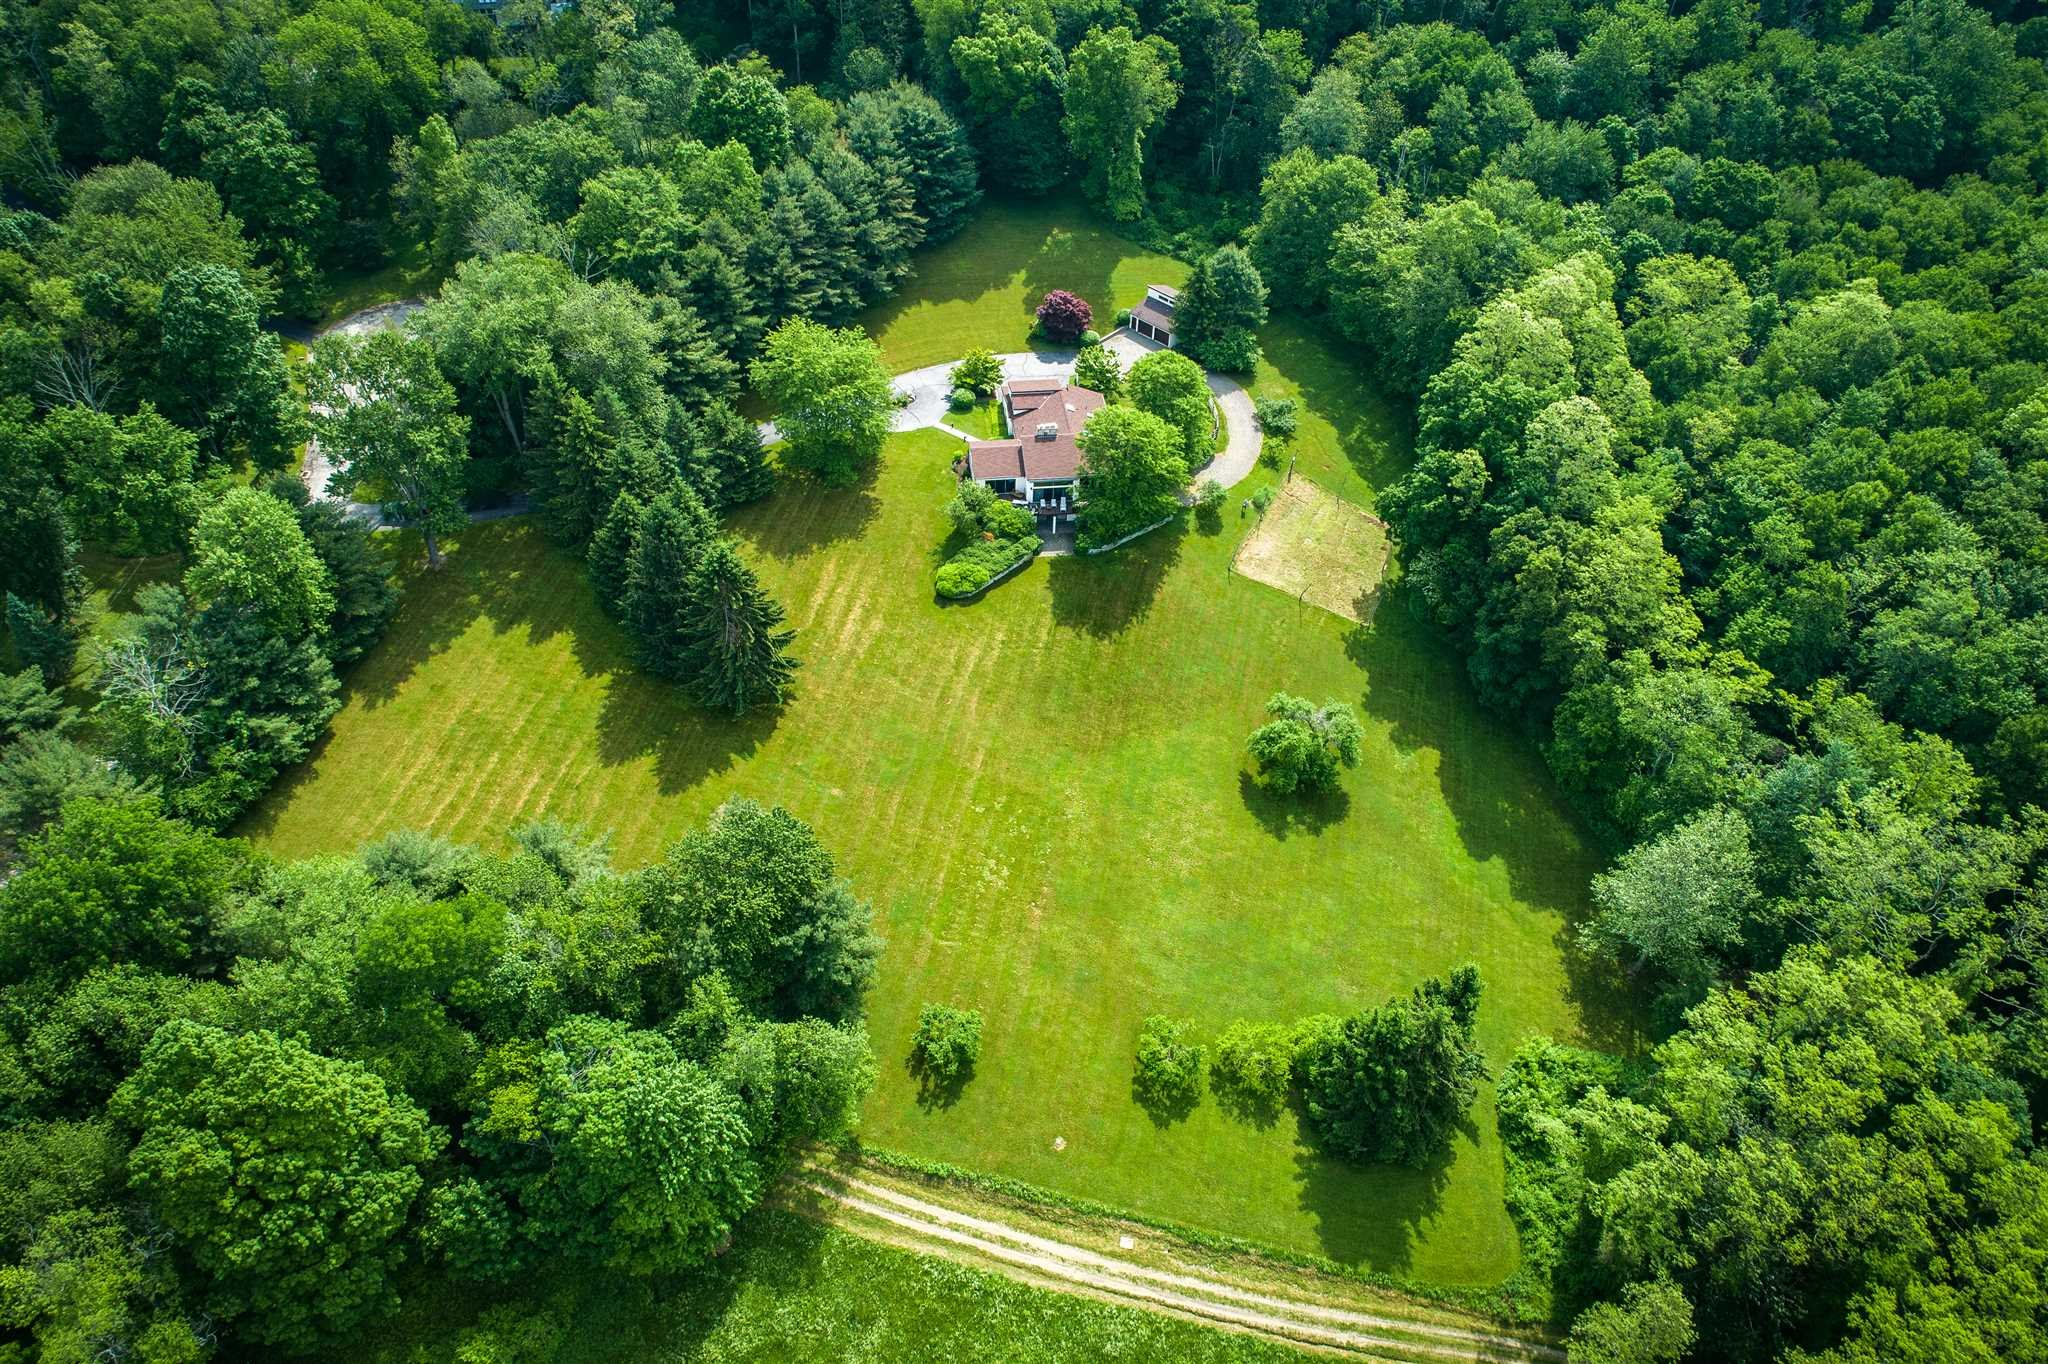 Single Family Home for Sale at 28 STRAWBERRY HILL Road 28 STRAWBERRY HILL Road Pawling, New York 12564 United States